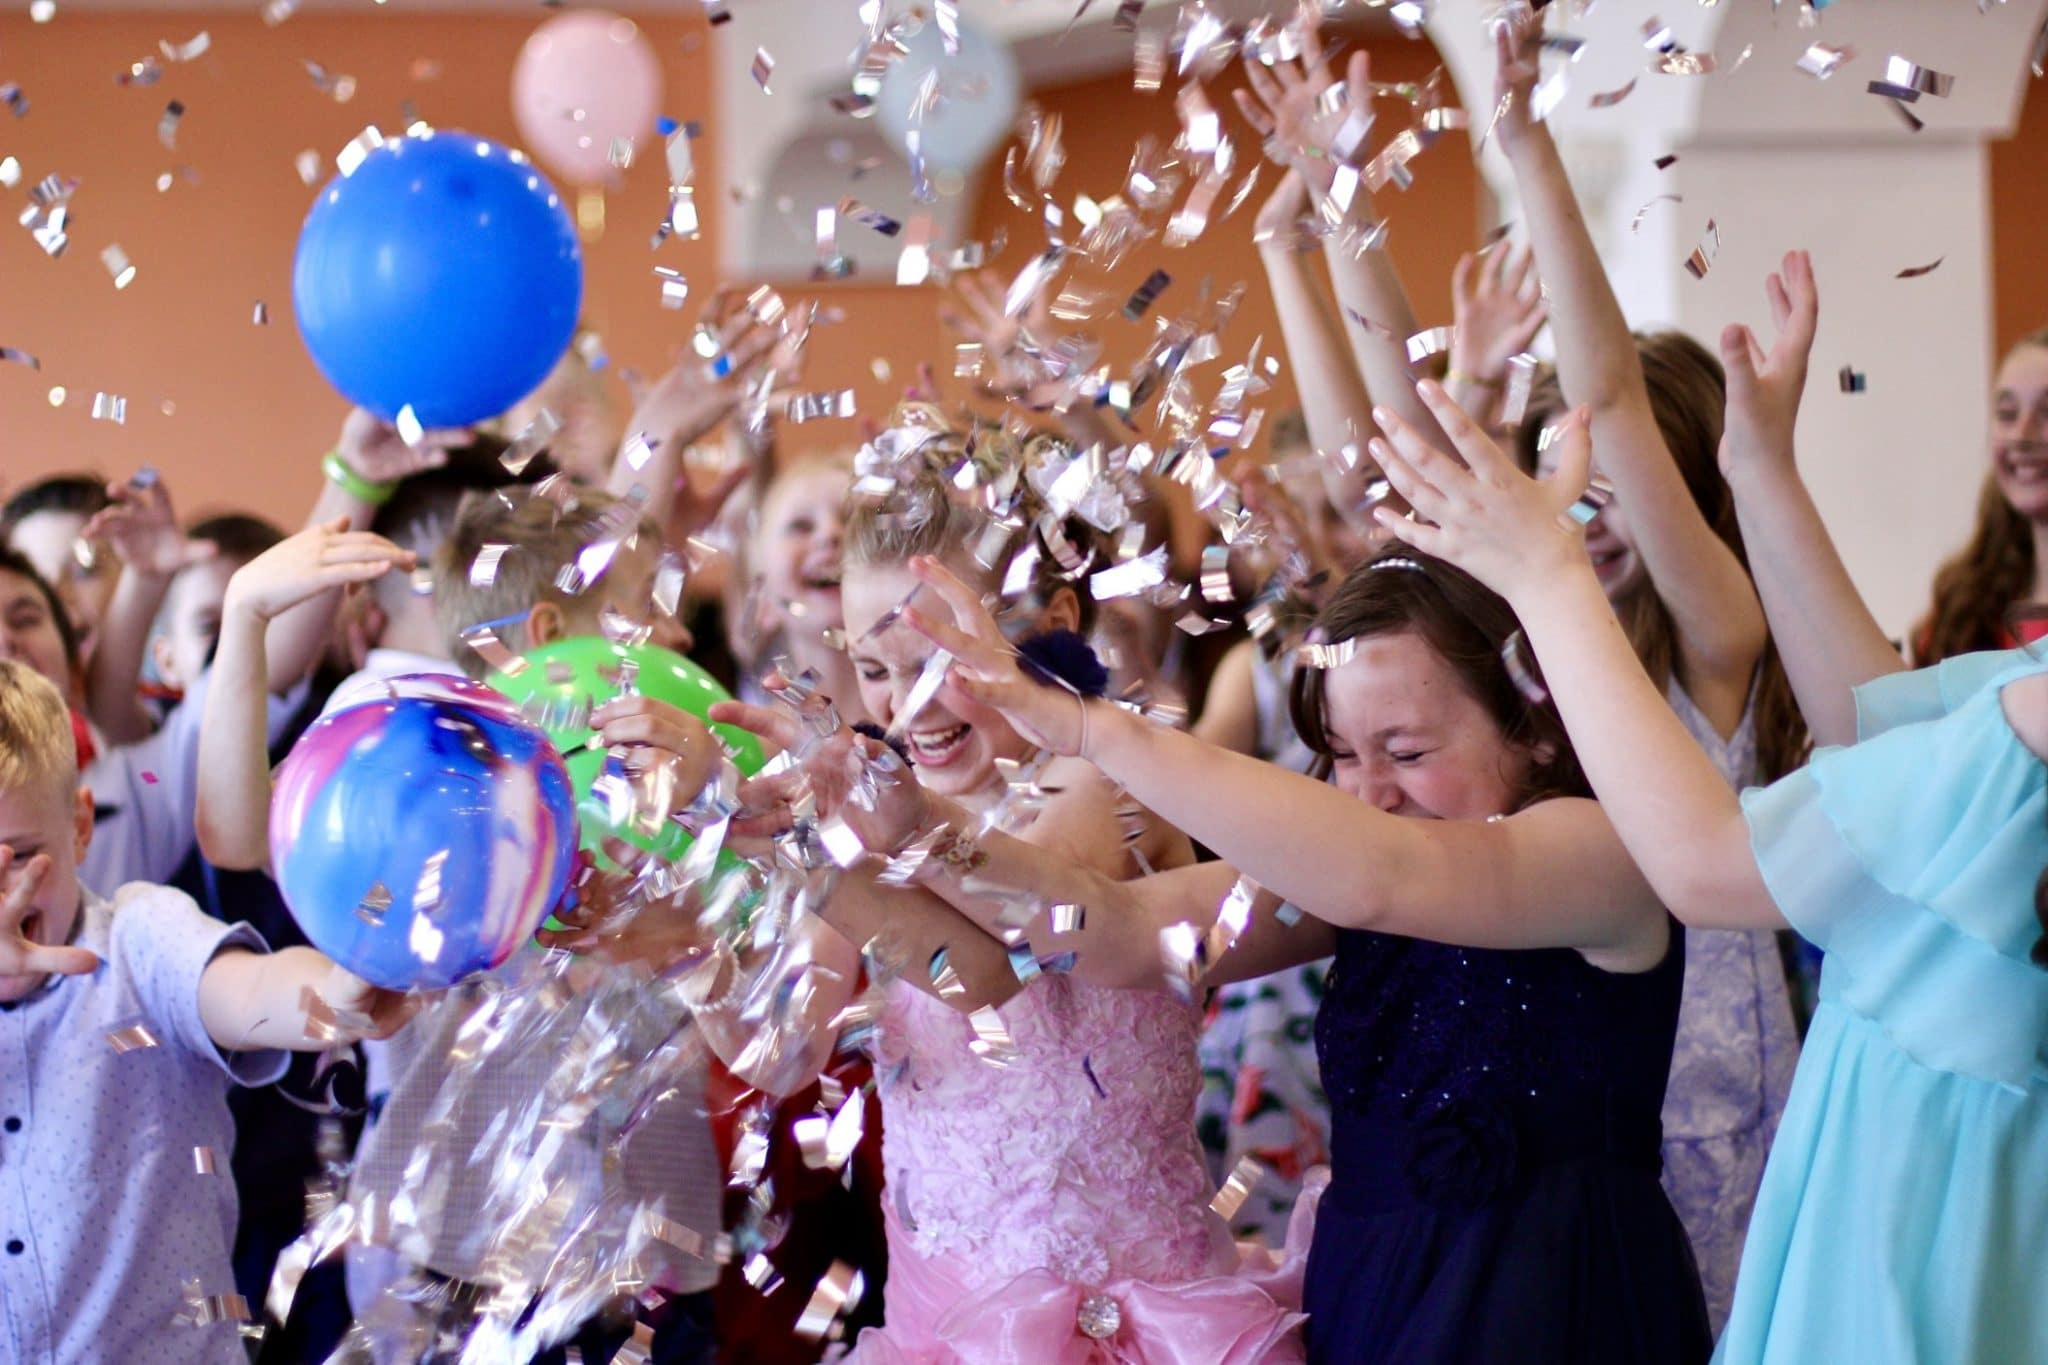 kids-having-fun-at-a-childrens-party-in-the-rain-of-shiny-confetti-celebrate-togetherness-boys-pupils_t20_QzZn9j